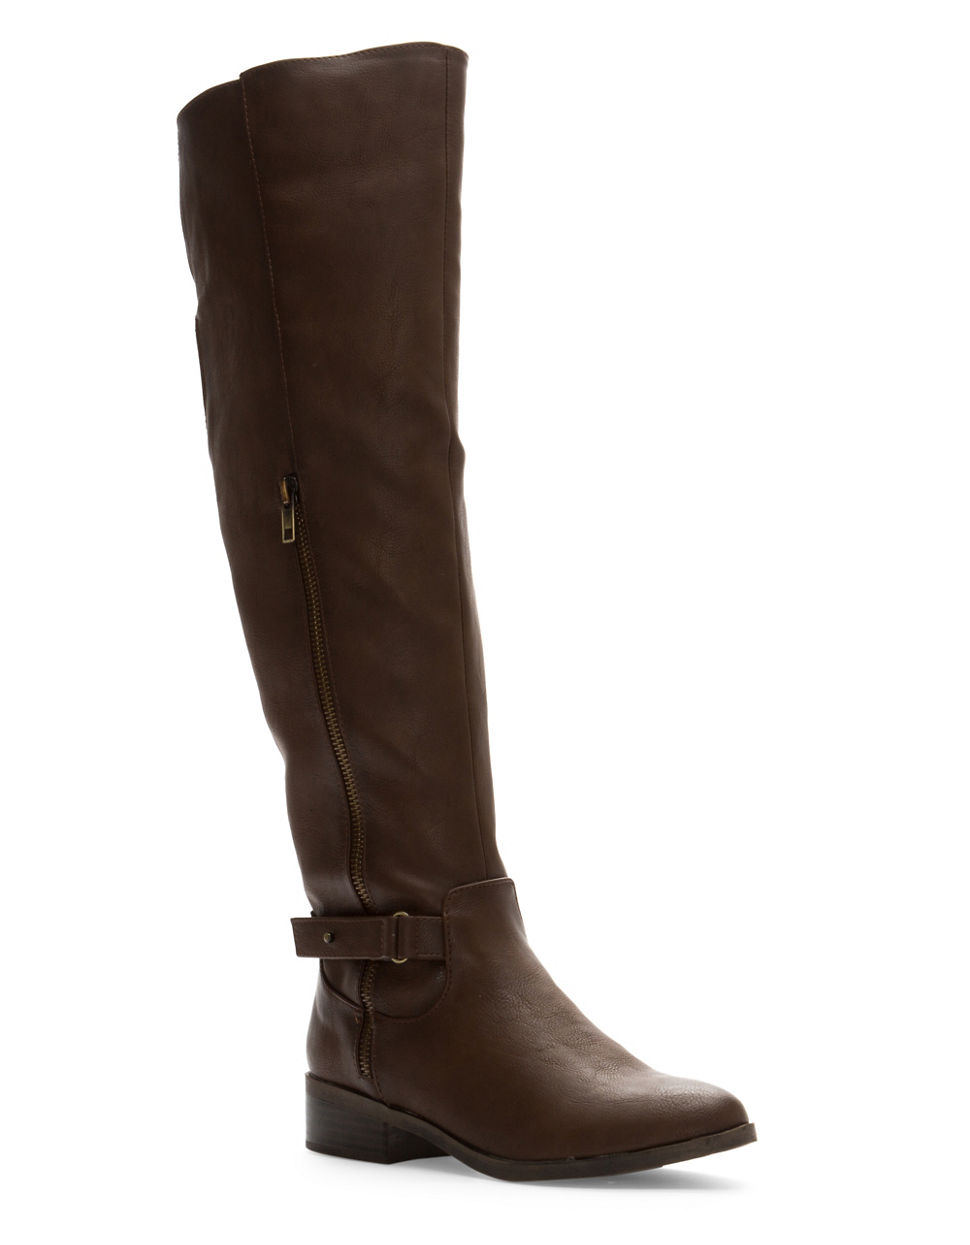 Riding Boots & Tall Boots for Women | Hudson's Bay